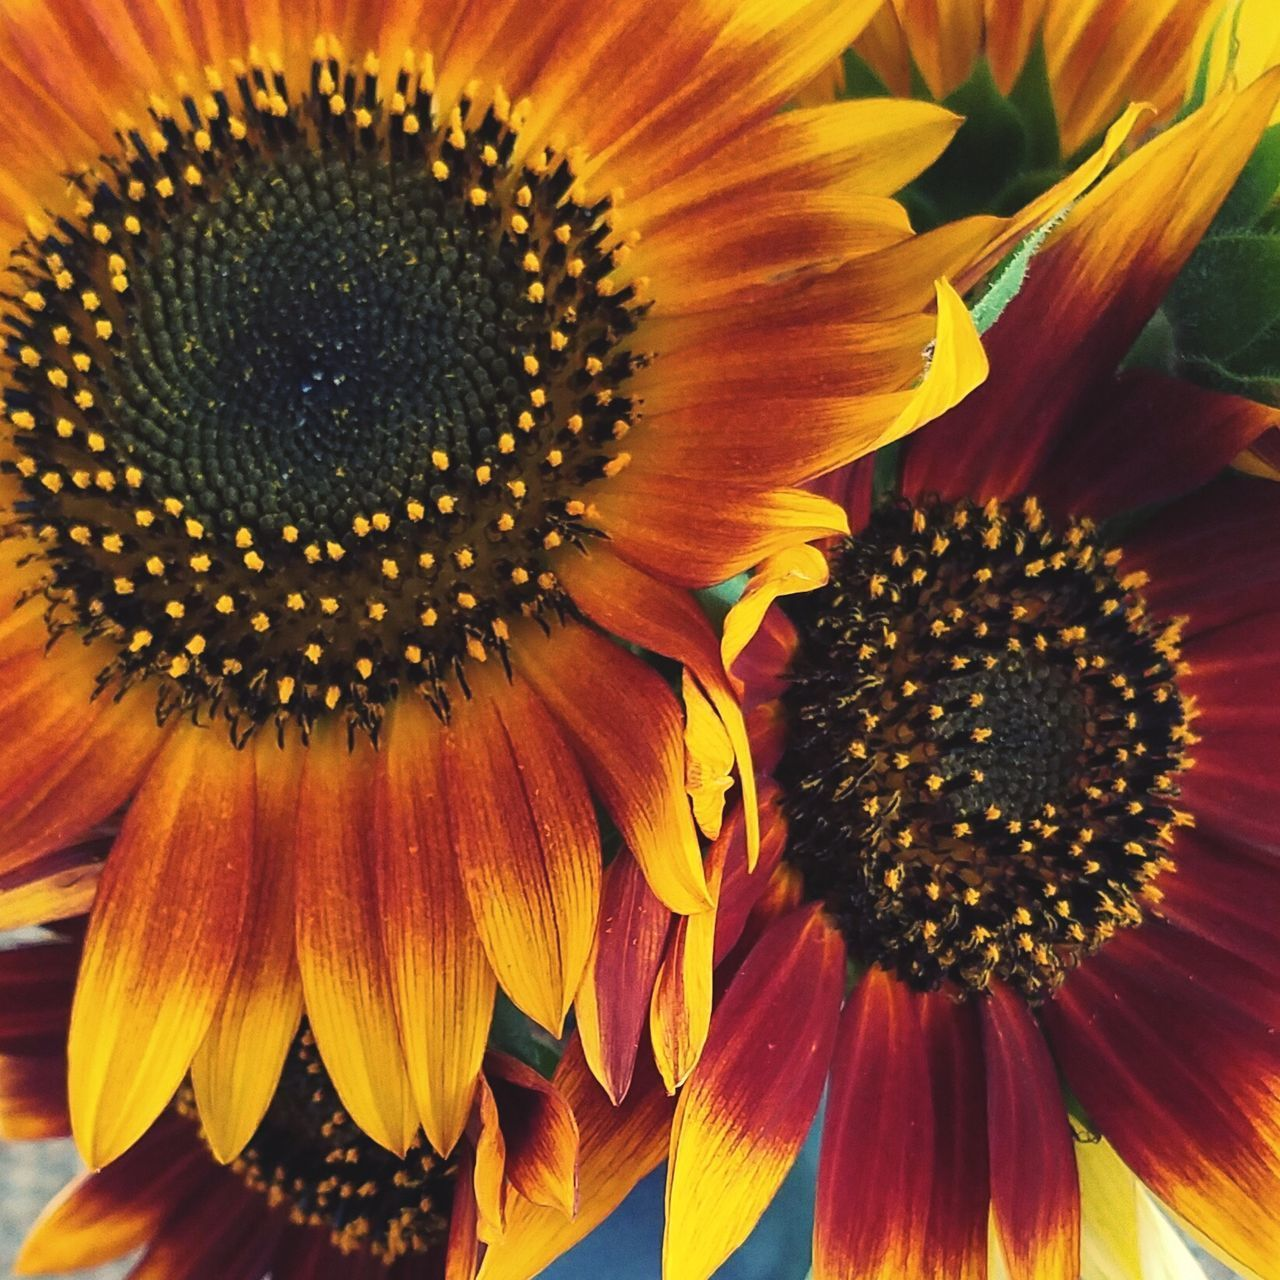 flower, flowering plant, flower head, vulnerability, petal, fragility, freshness, pollen, inflorescence, plant, growth, beauty in nature, close-up, sunflower, yellow, nature, no people, daisy, day, softness, gazania